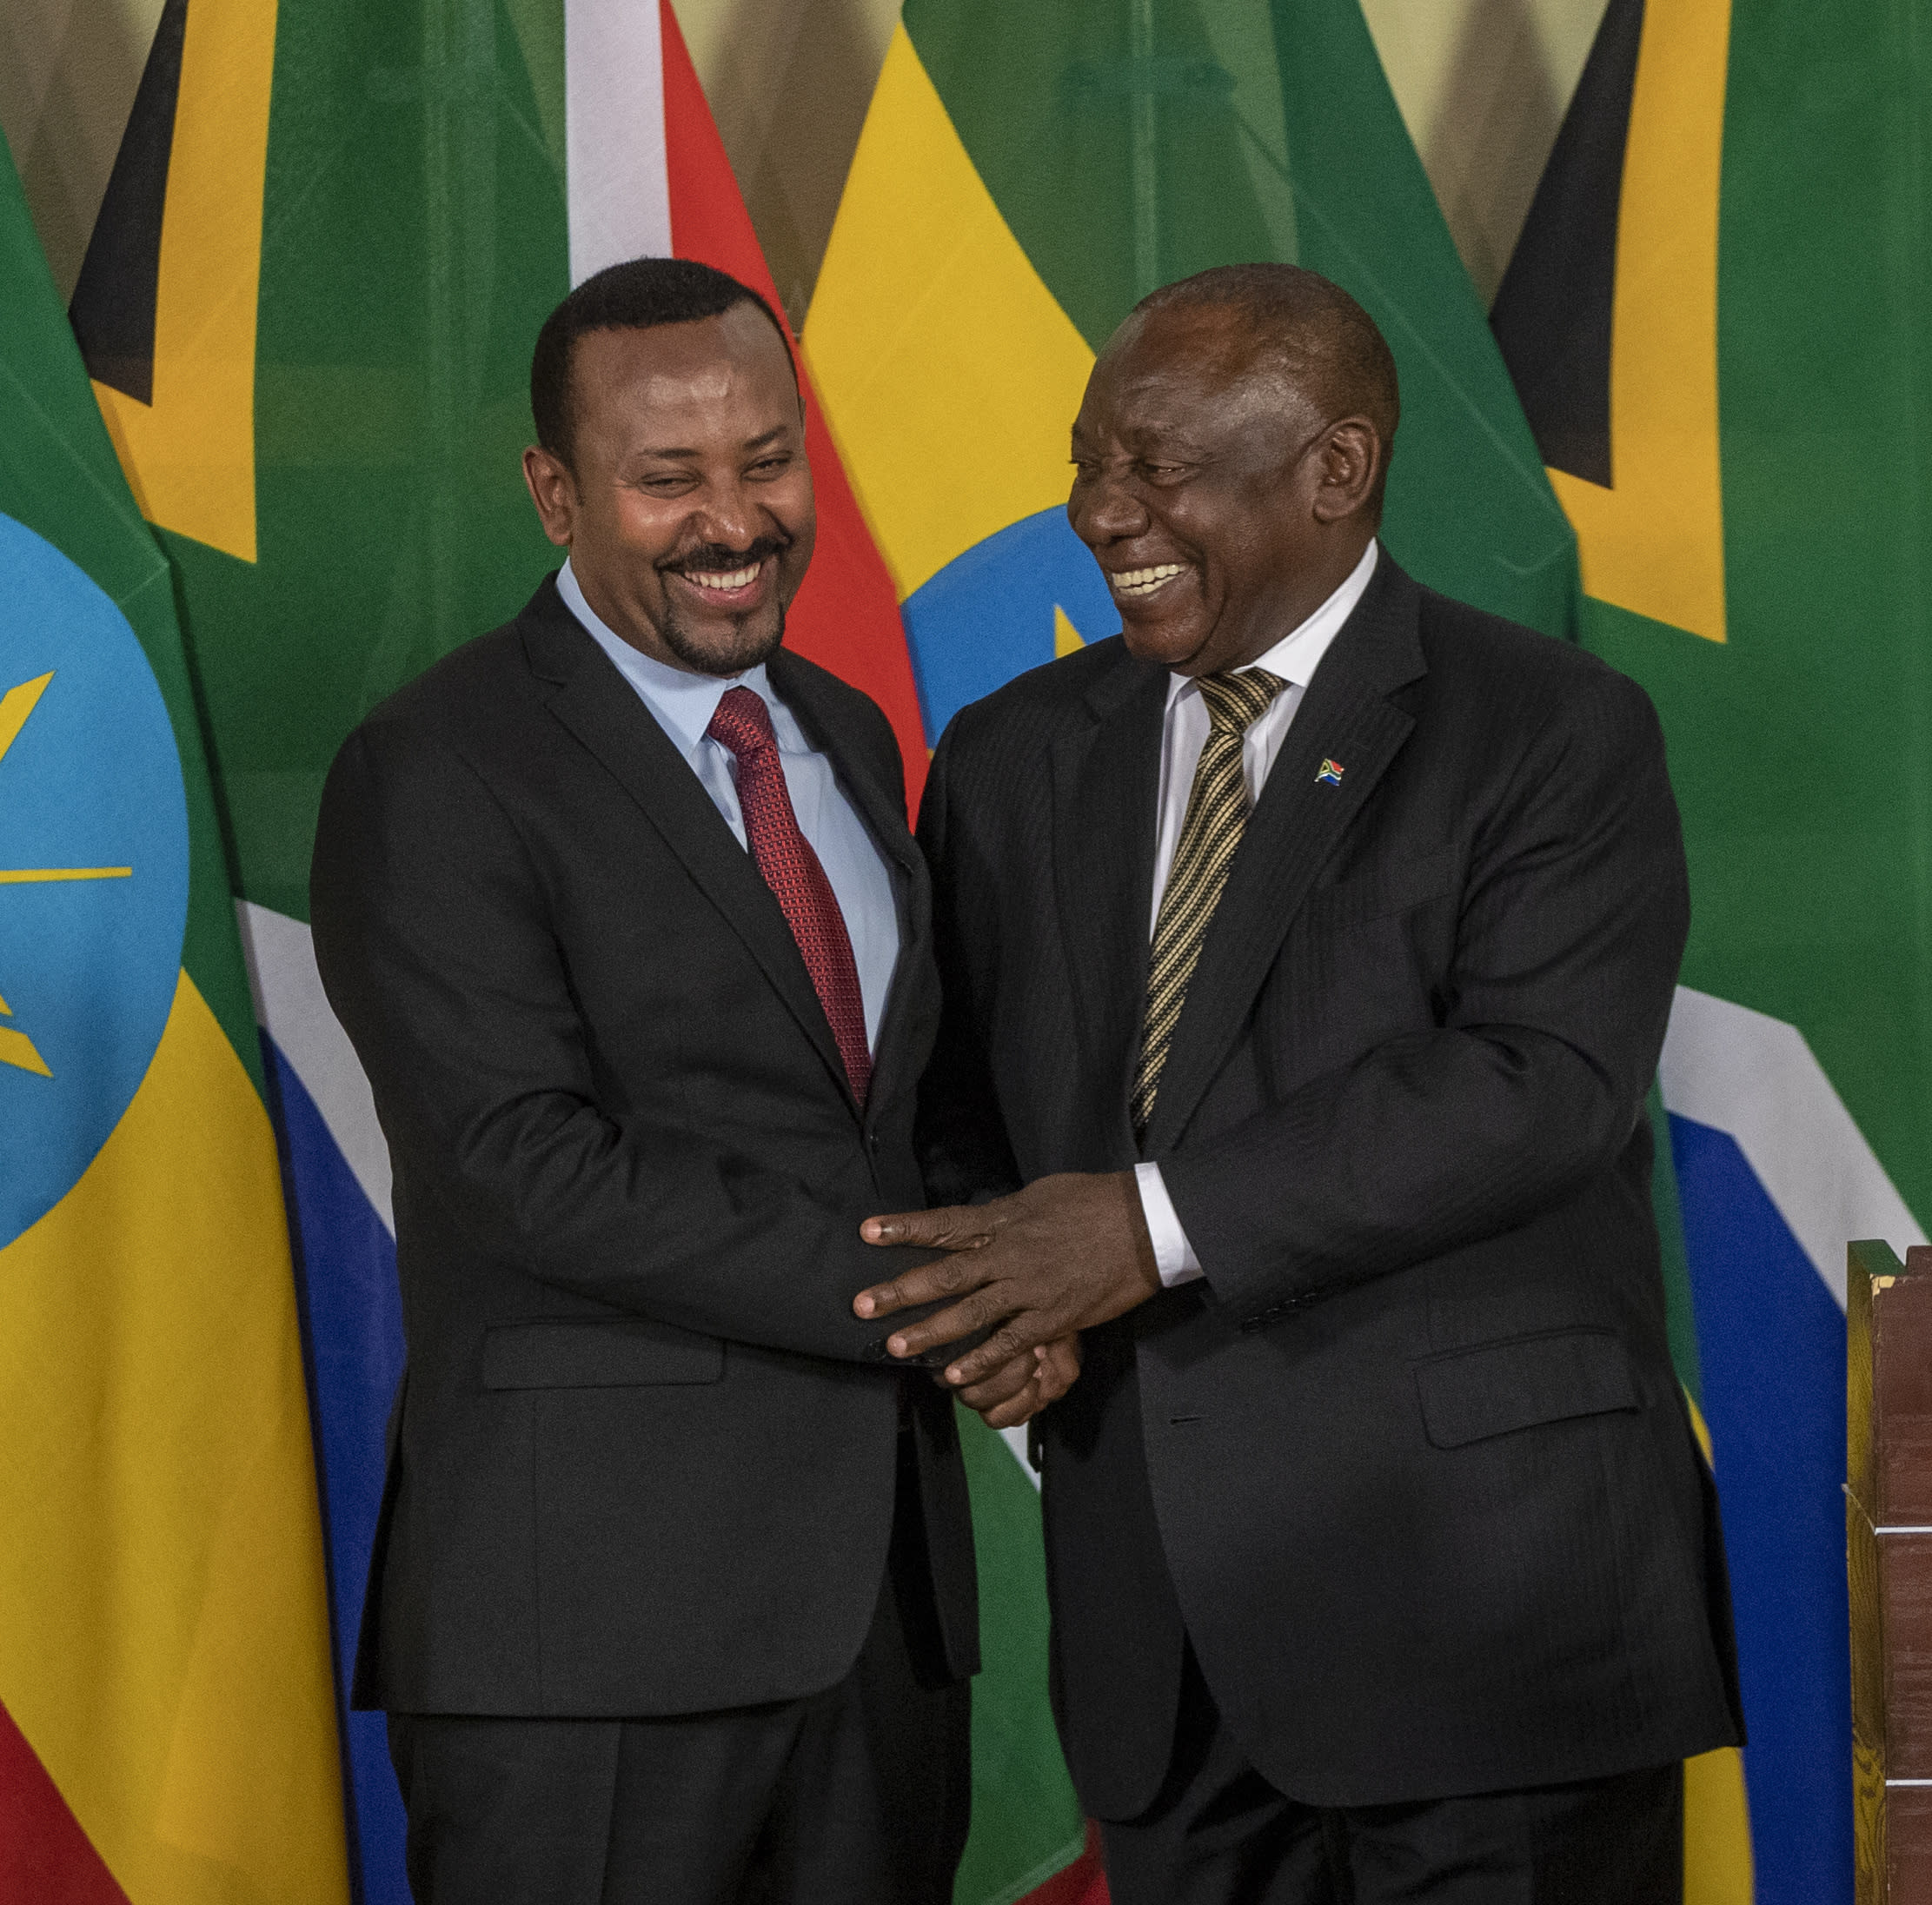 South African President Cyril Ramaphosa, right, shakes hand with Ethiopia's Prime Minister Abiy Ahmed after their joint media conference at the Union Building in Pretoria, South Africa, Sunday, Jan. 12, 2020. (AP Photo/Themba Hadebe)